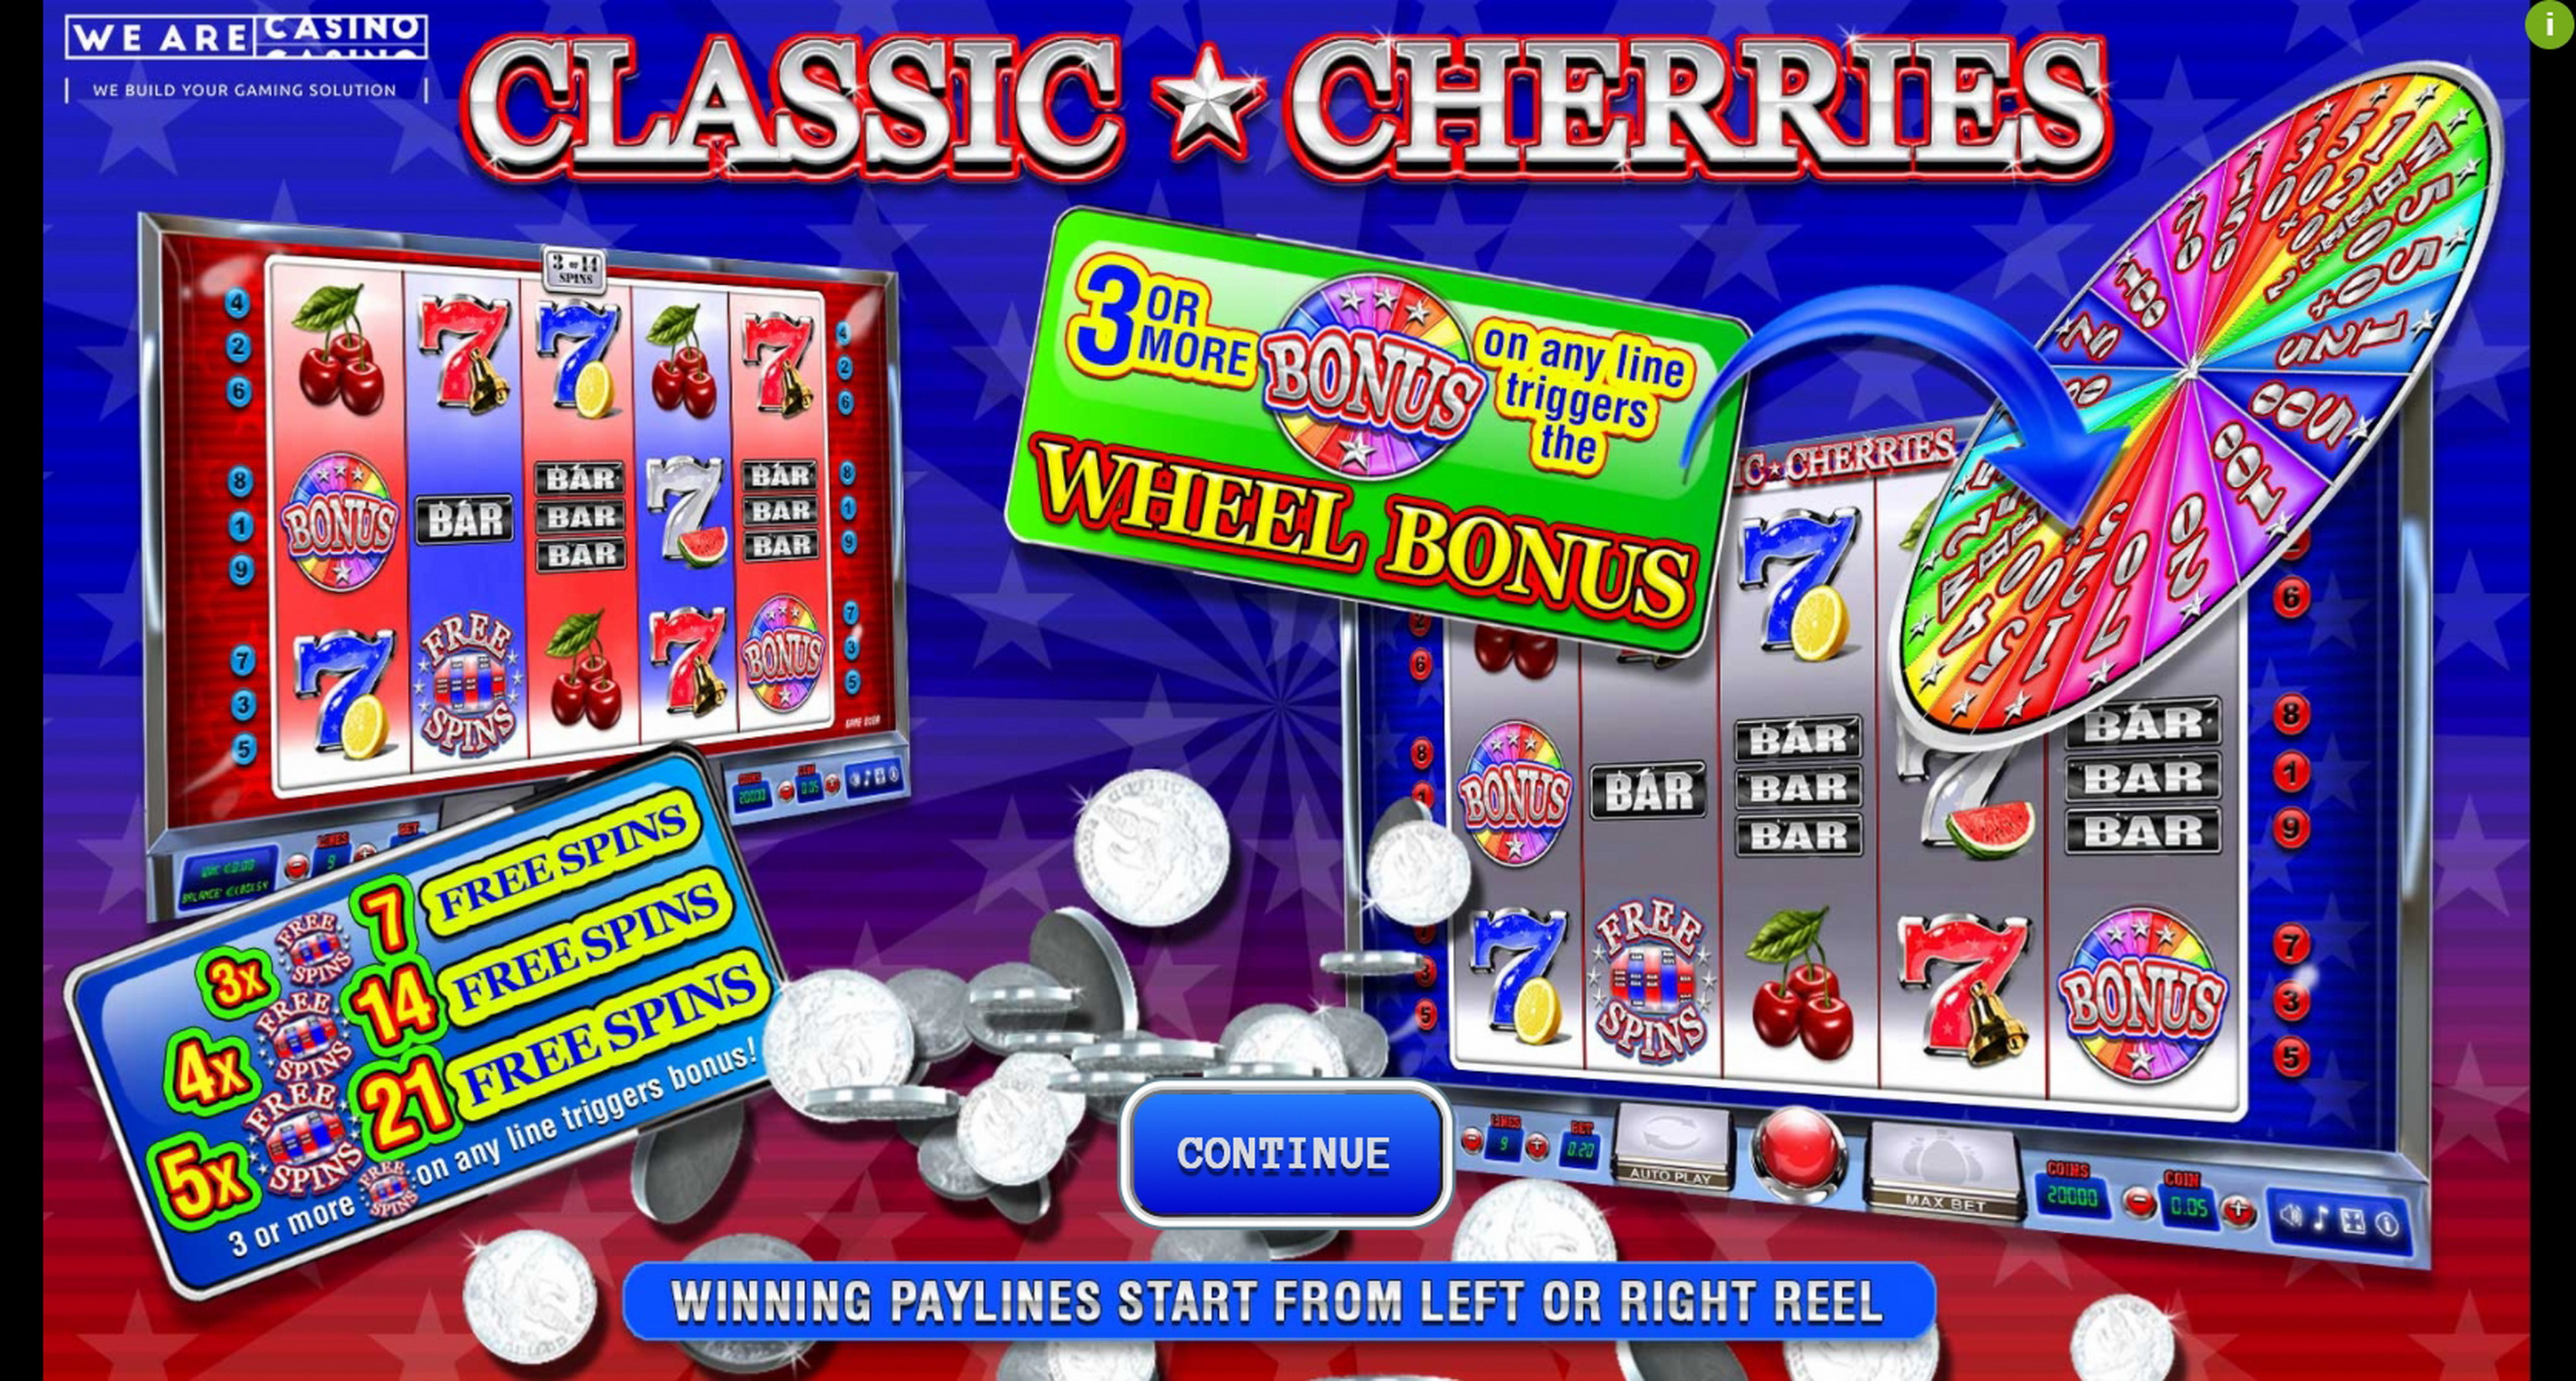 Play Classic Cherries Free Casino Slot Game by We Are Casino